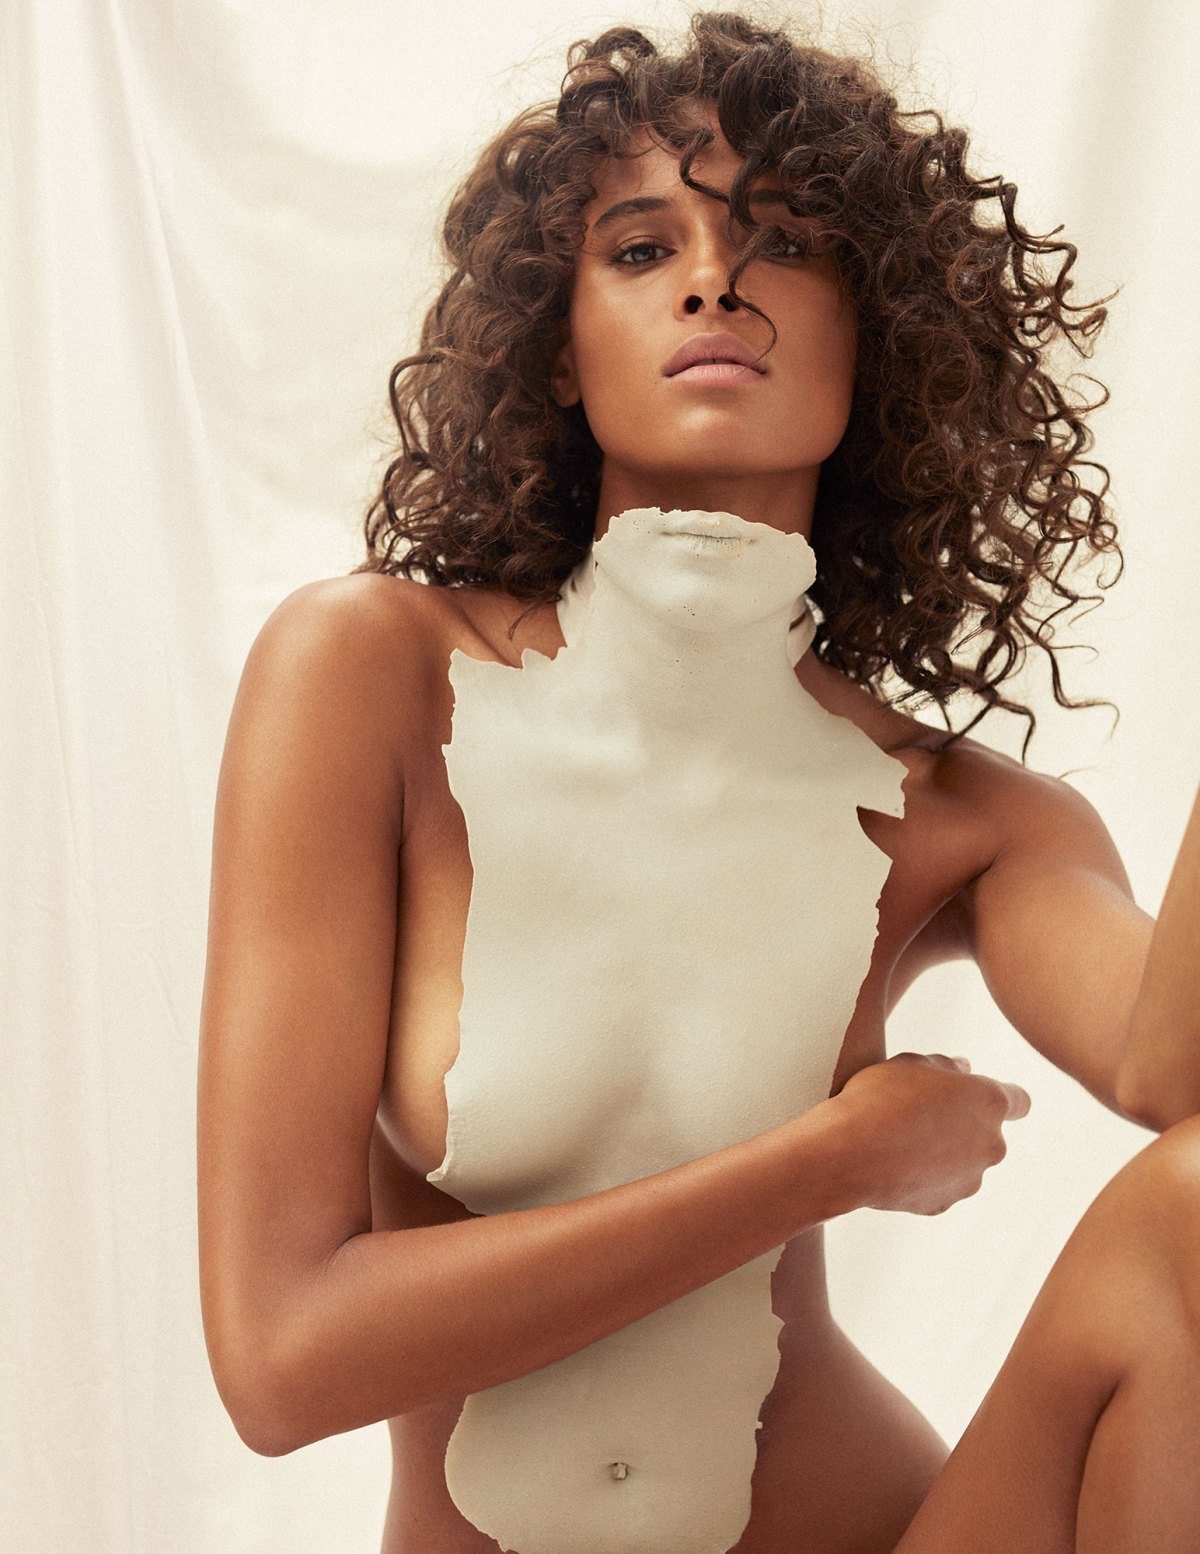 Cindy Bruna by Felix Valiente for Vogue España